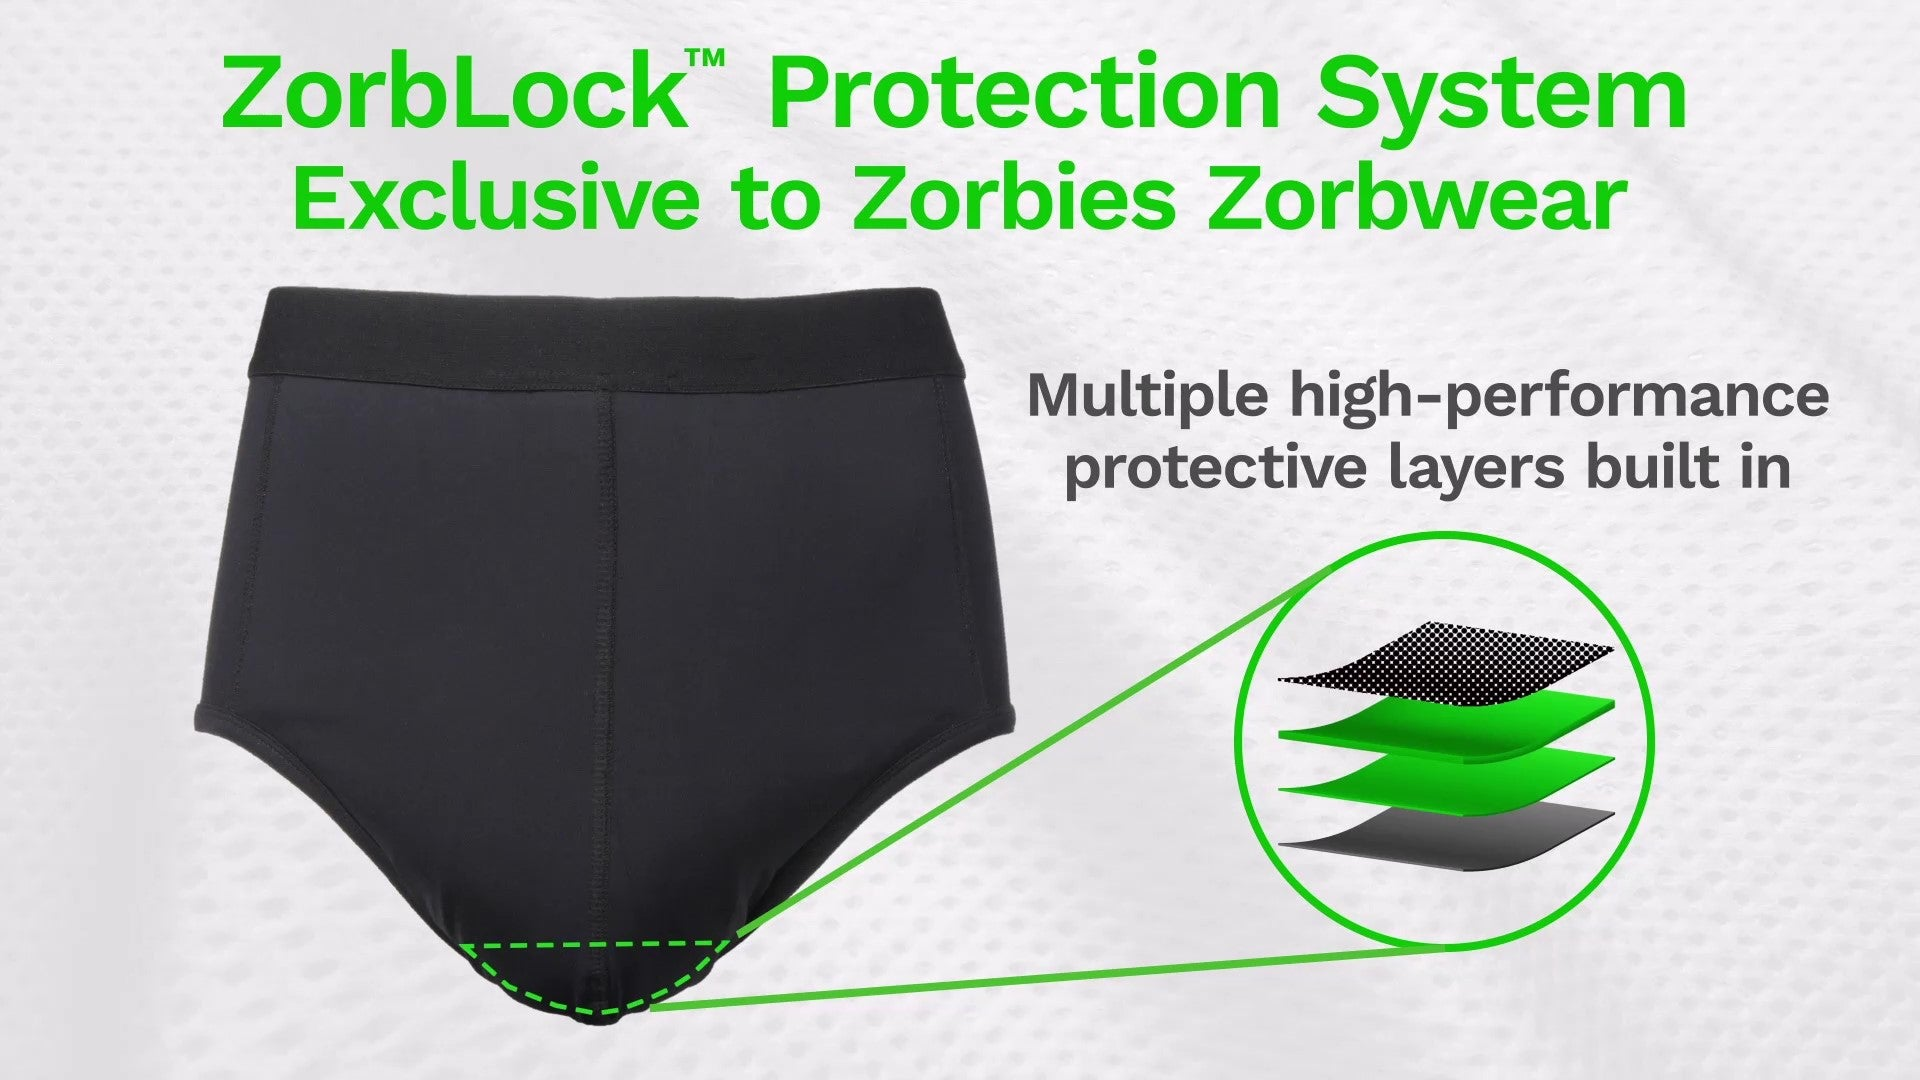 ZorbLock Incontinence Protection System Diagram - multiple layers of leak protection built in